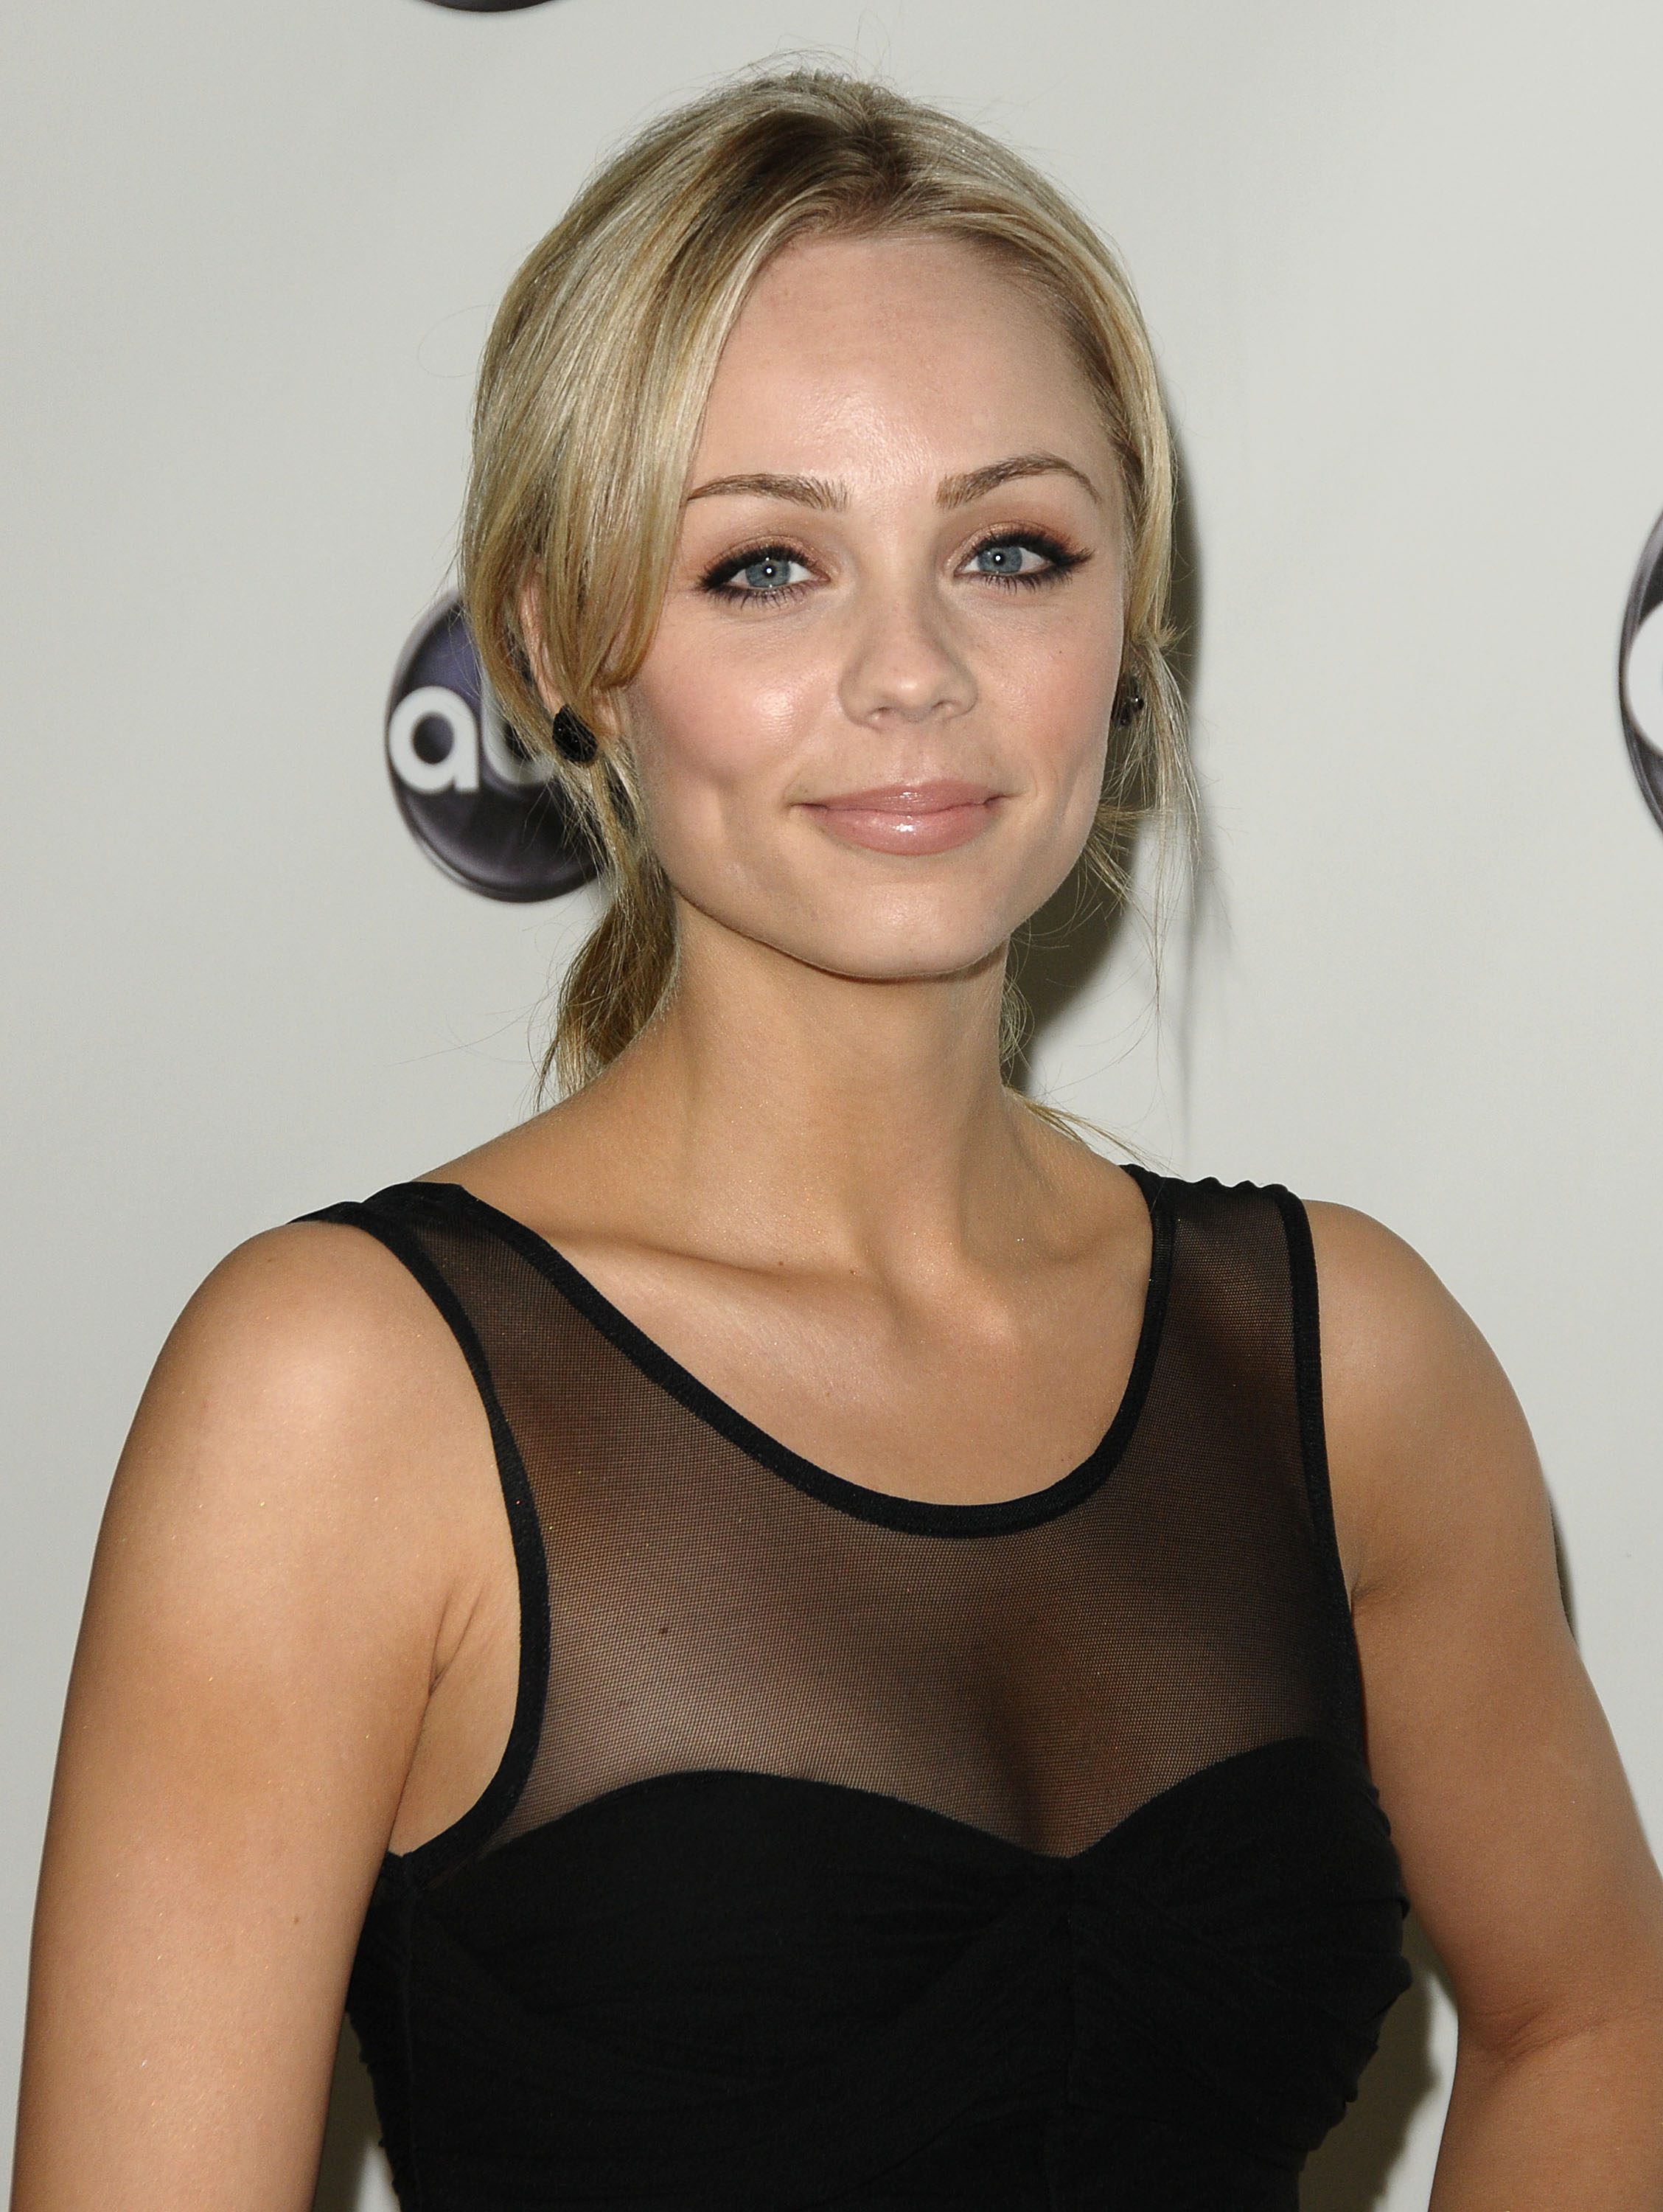 vandervoort girls Laura vandervoort has proven herself to be one of the most sexy and fun girls in movies and tv this laura vandervoort photo gallery includes pics of her face and body from the red carpet, beach, and even magazine photo shoots.